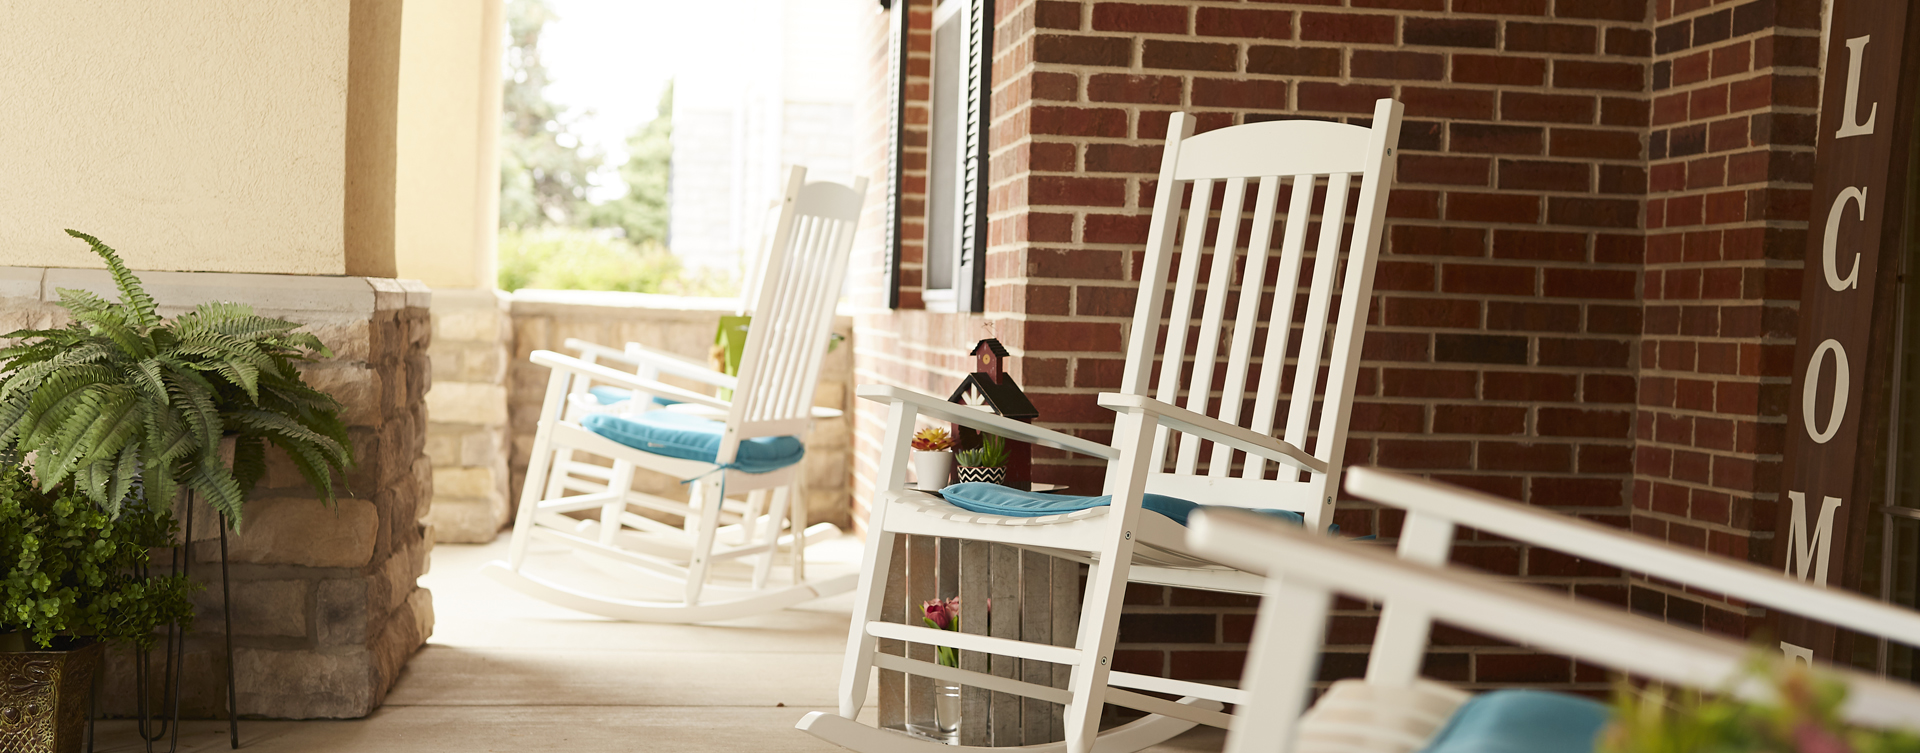 Relax in your favorite chair on the porch at Bickford of Springfield